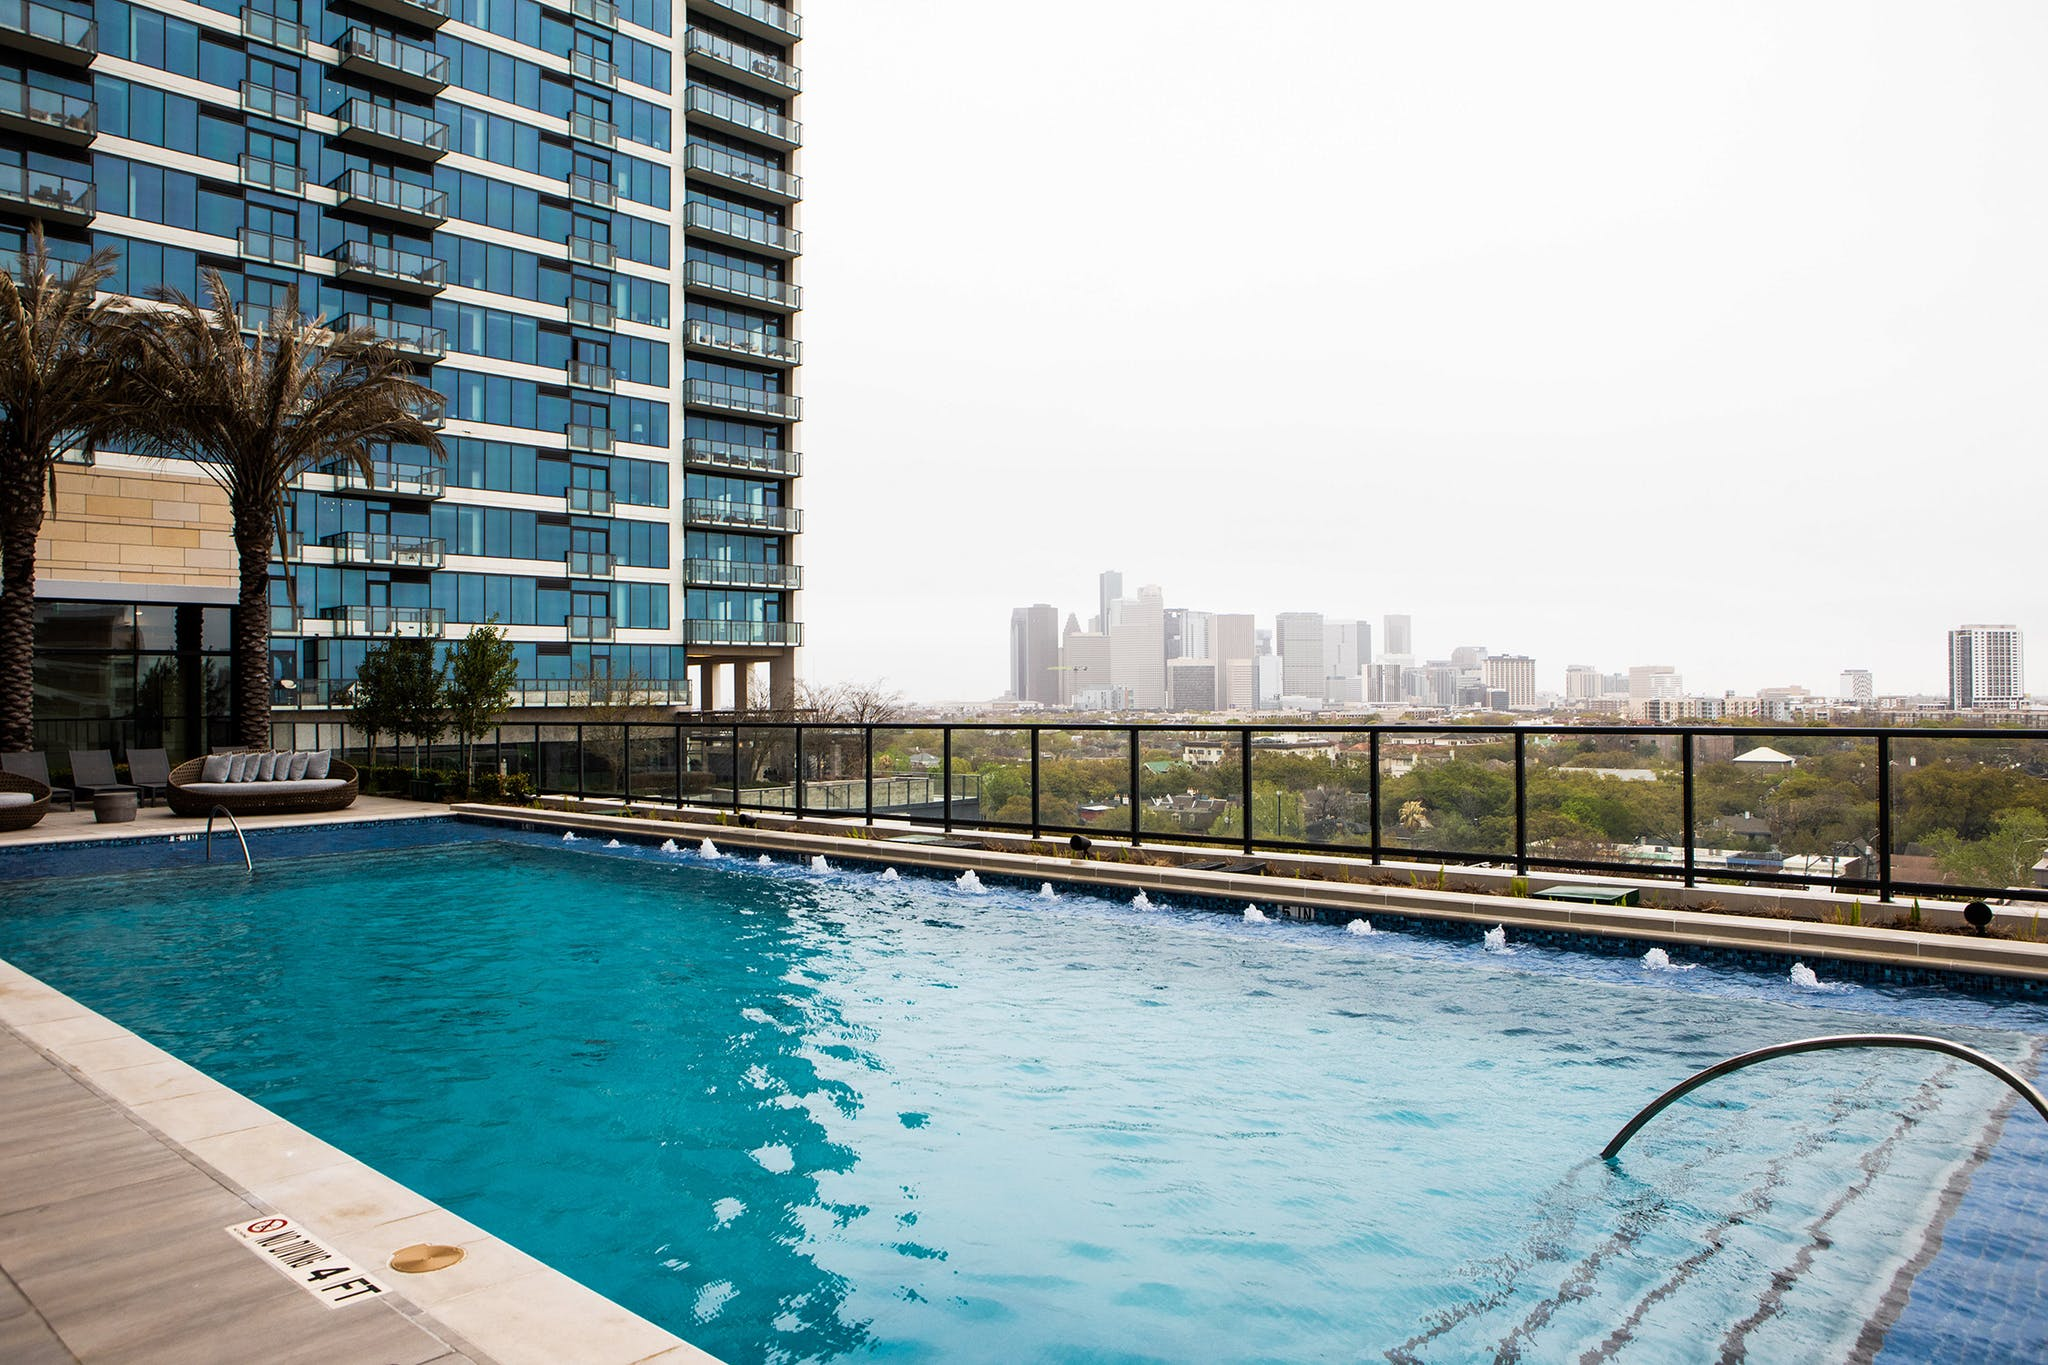 """""""You feel like you're in this little European city,"""" Dan says about the hotel, where it even sounds like you're across the pond: nearby church bells ring in crisply throughout the day. But the view of downtown Houston from the pool is unmistakeable."""